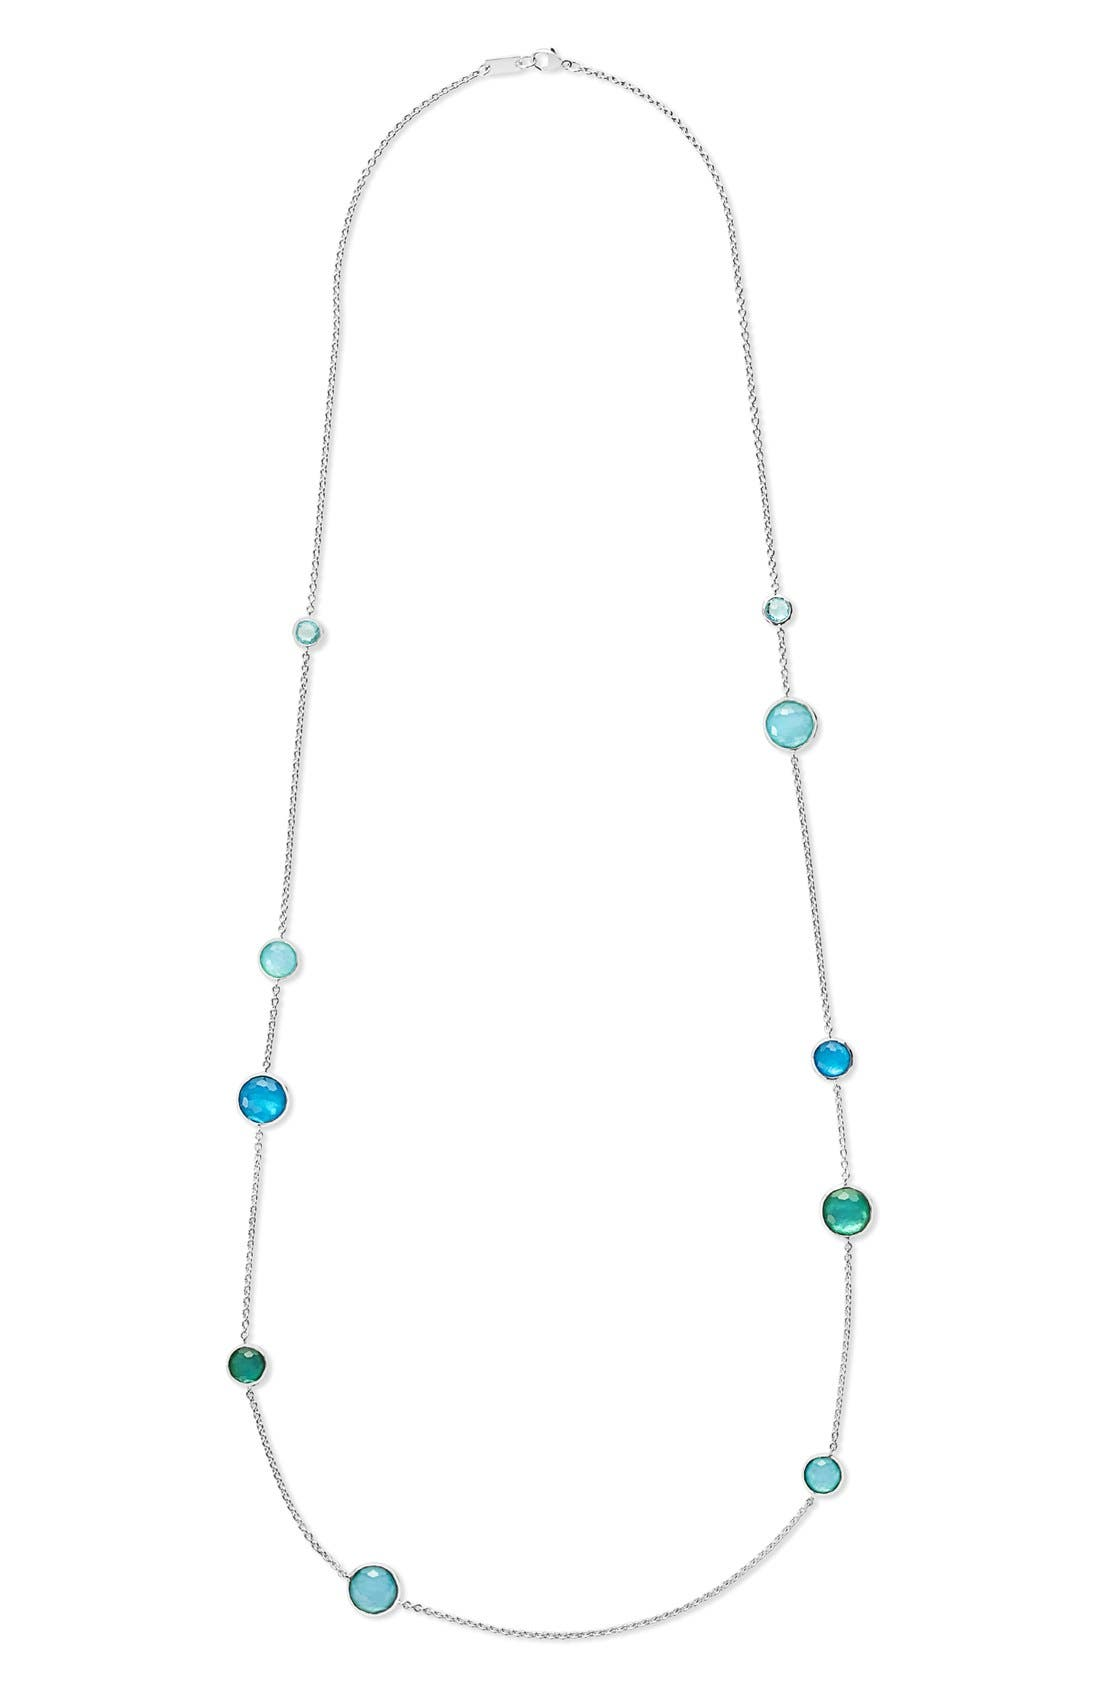 Alternate Image 1 Selected - Ippolita 'Wonderland - Lollipop' Long Station Necklace (Nordstrom Exclusive)